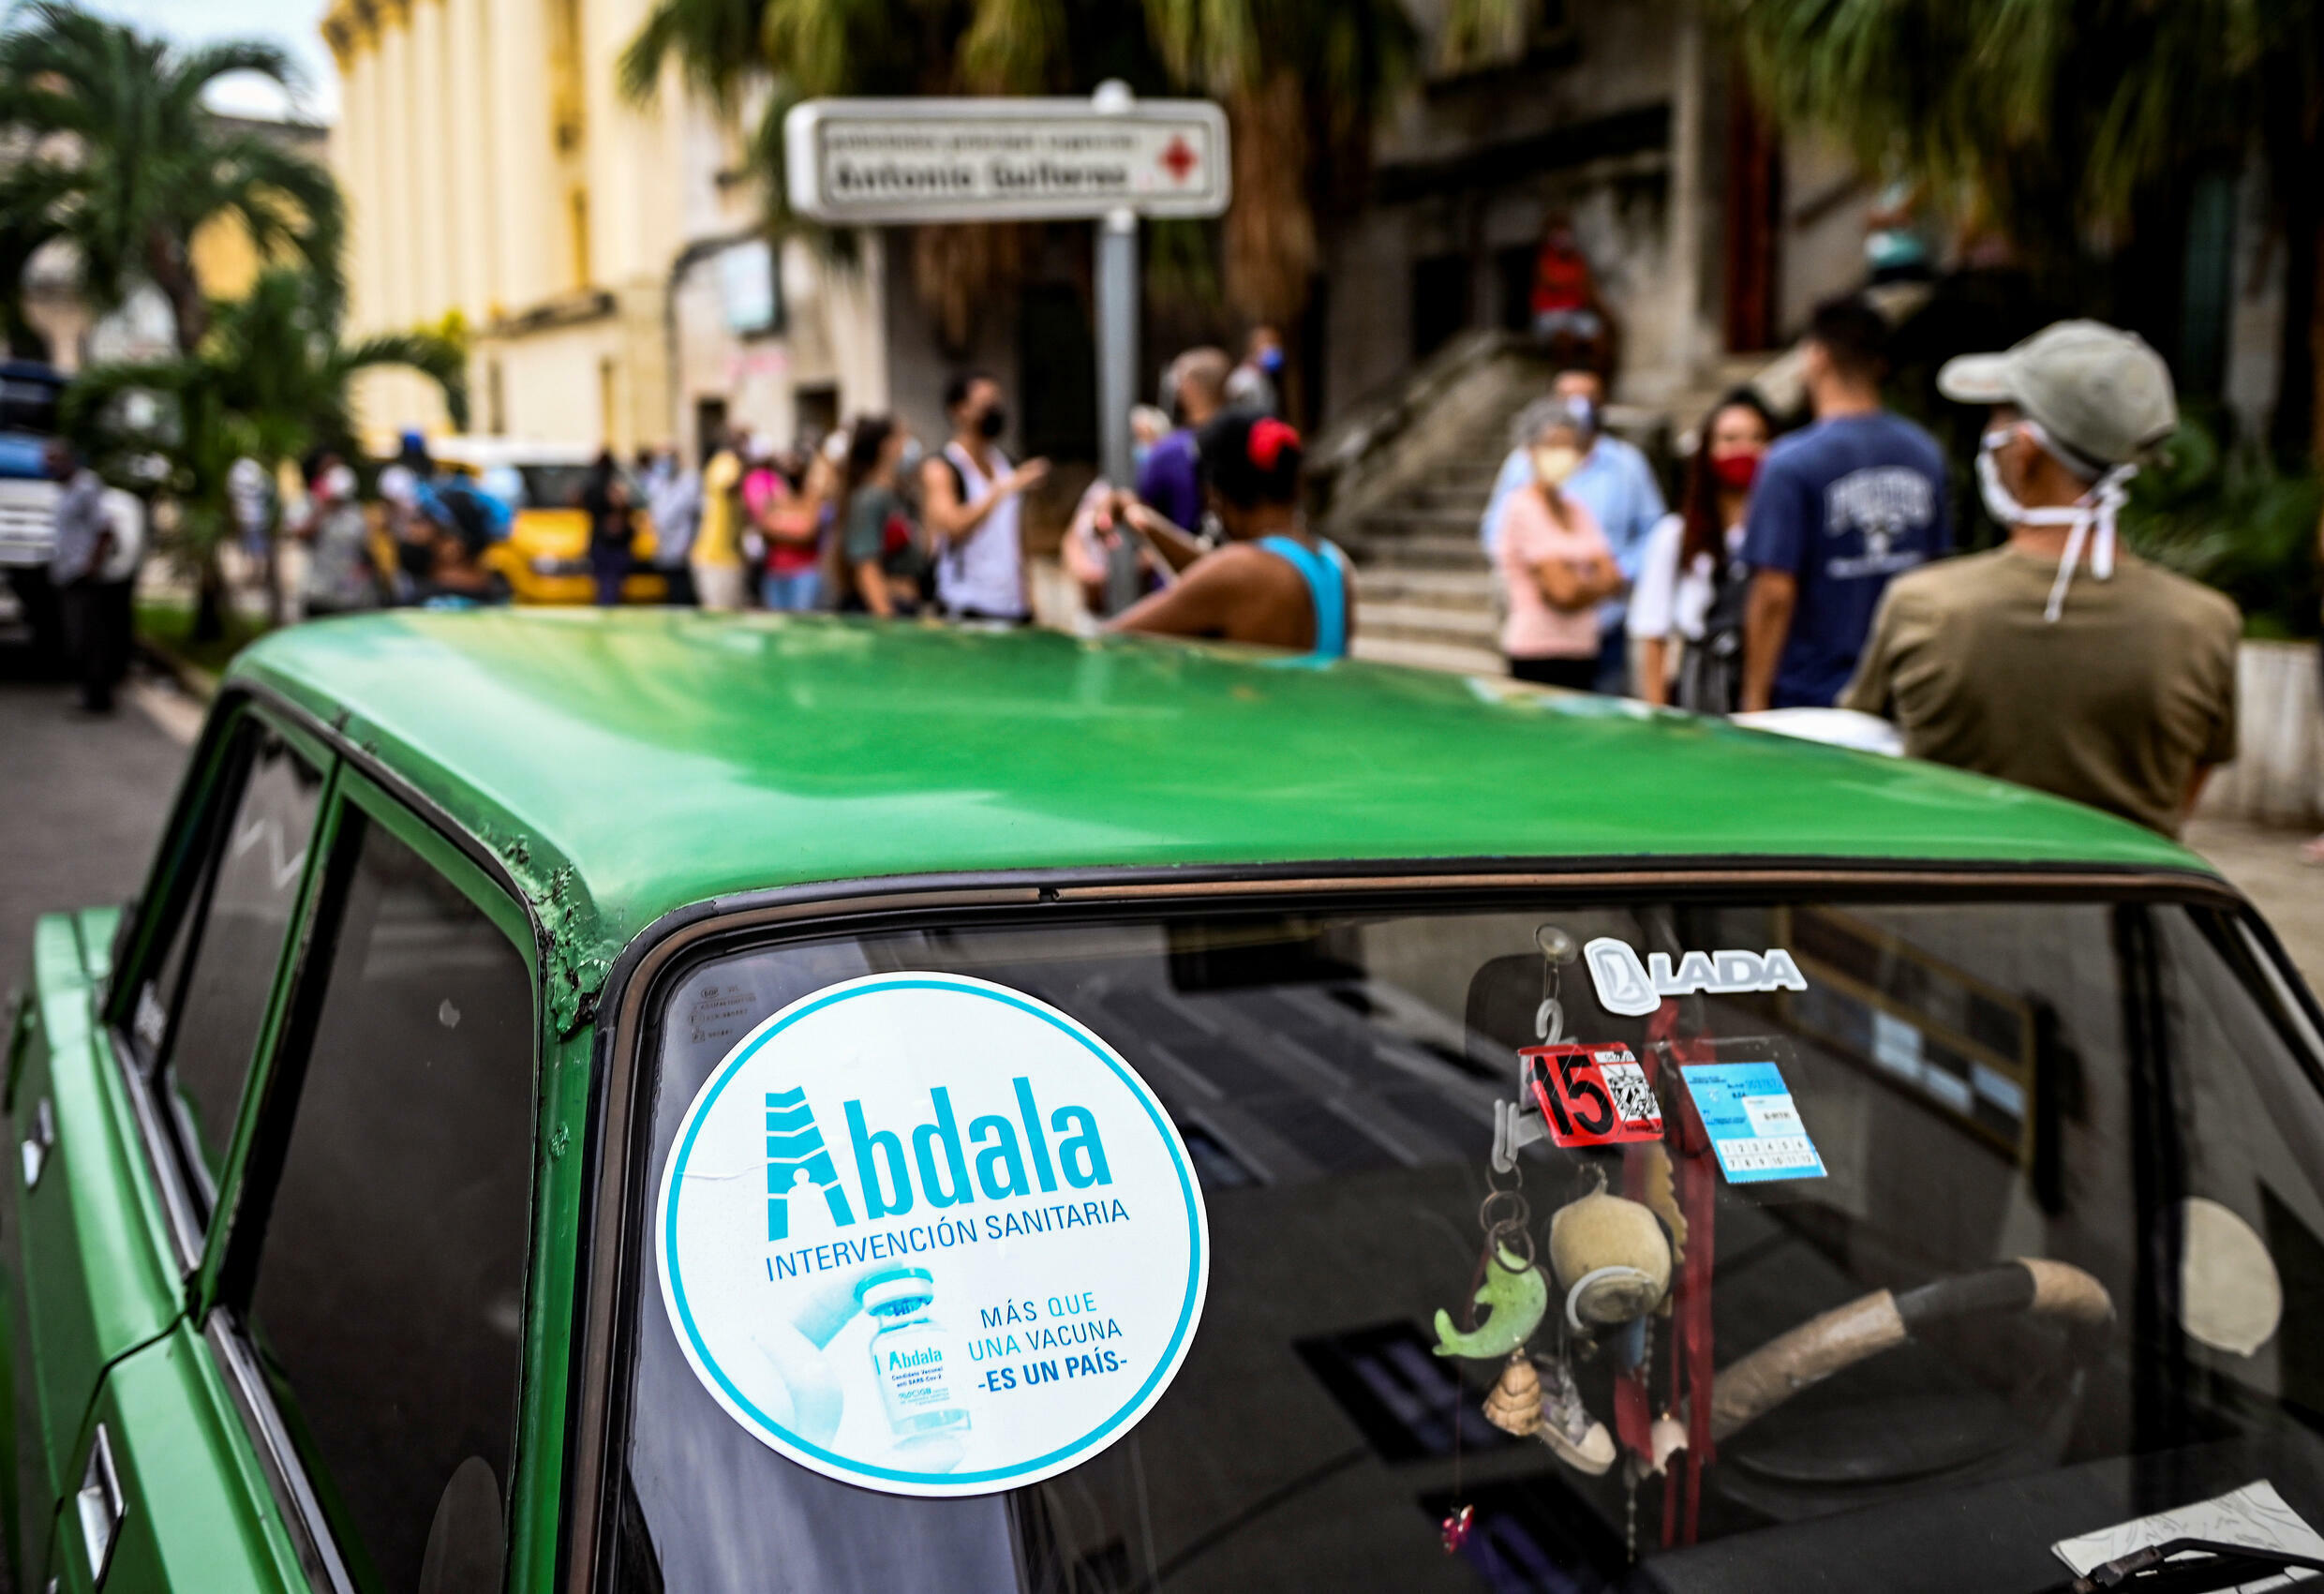 A poster of Abdala, the Cuban vaccine against covid-19, on the windshield of a car, on July 1, 2021 in Havana.